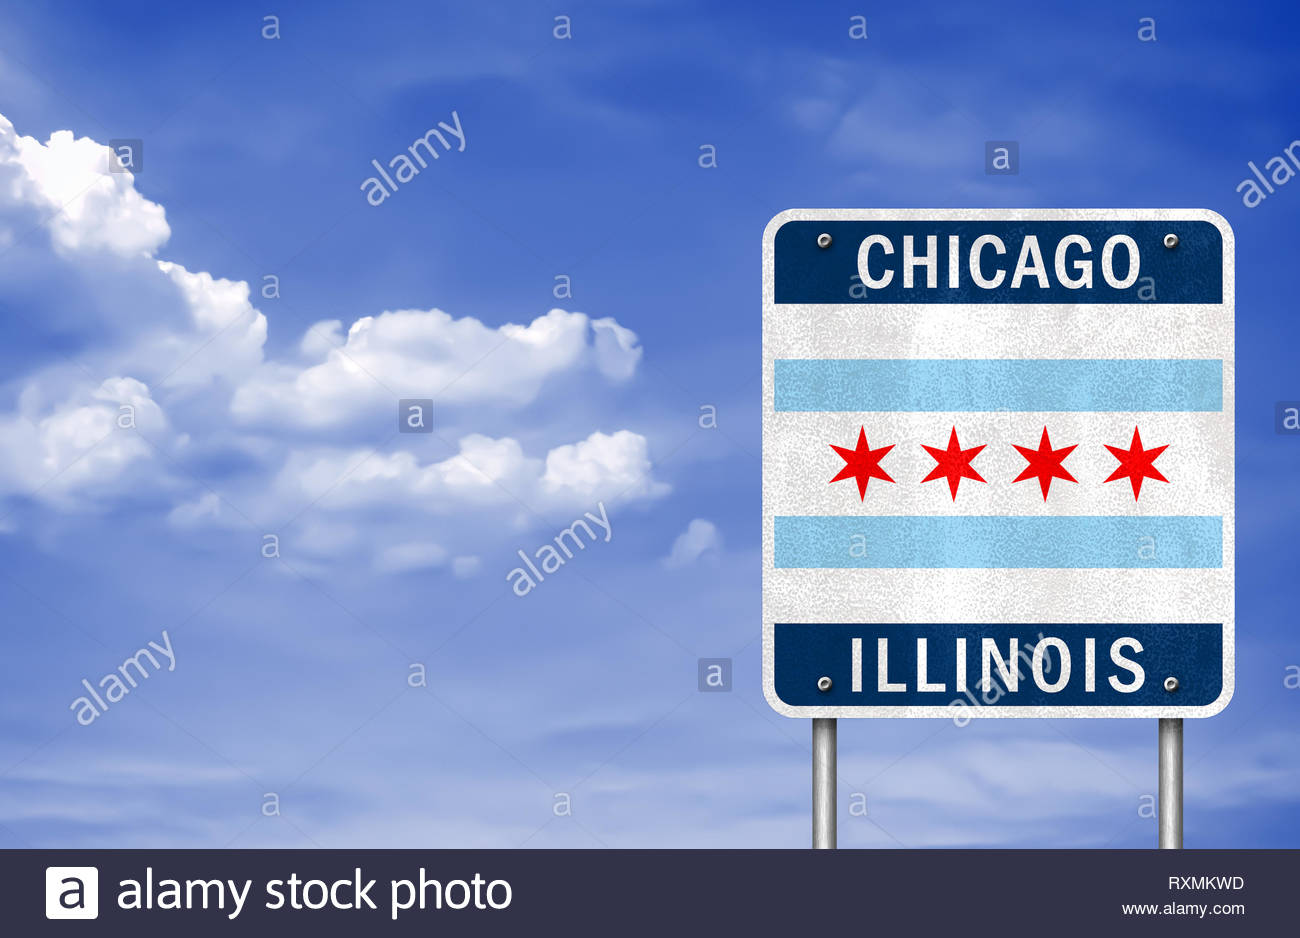 Welcome to Chicago - Illinois - Stock Image